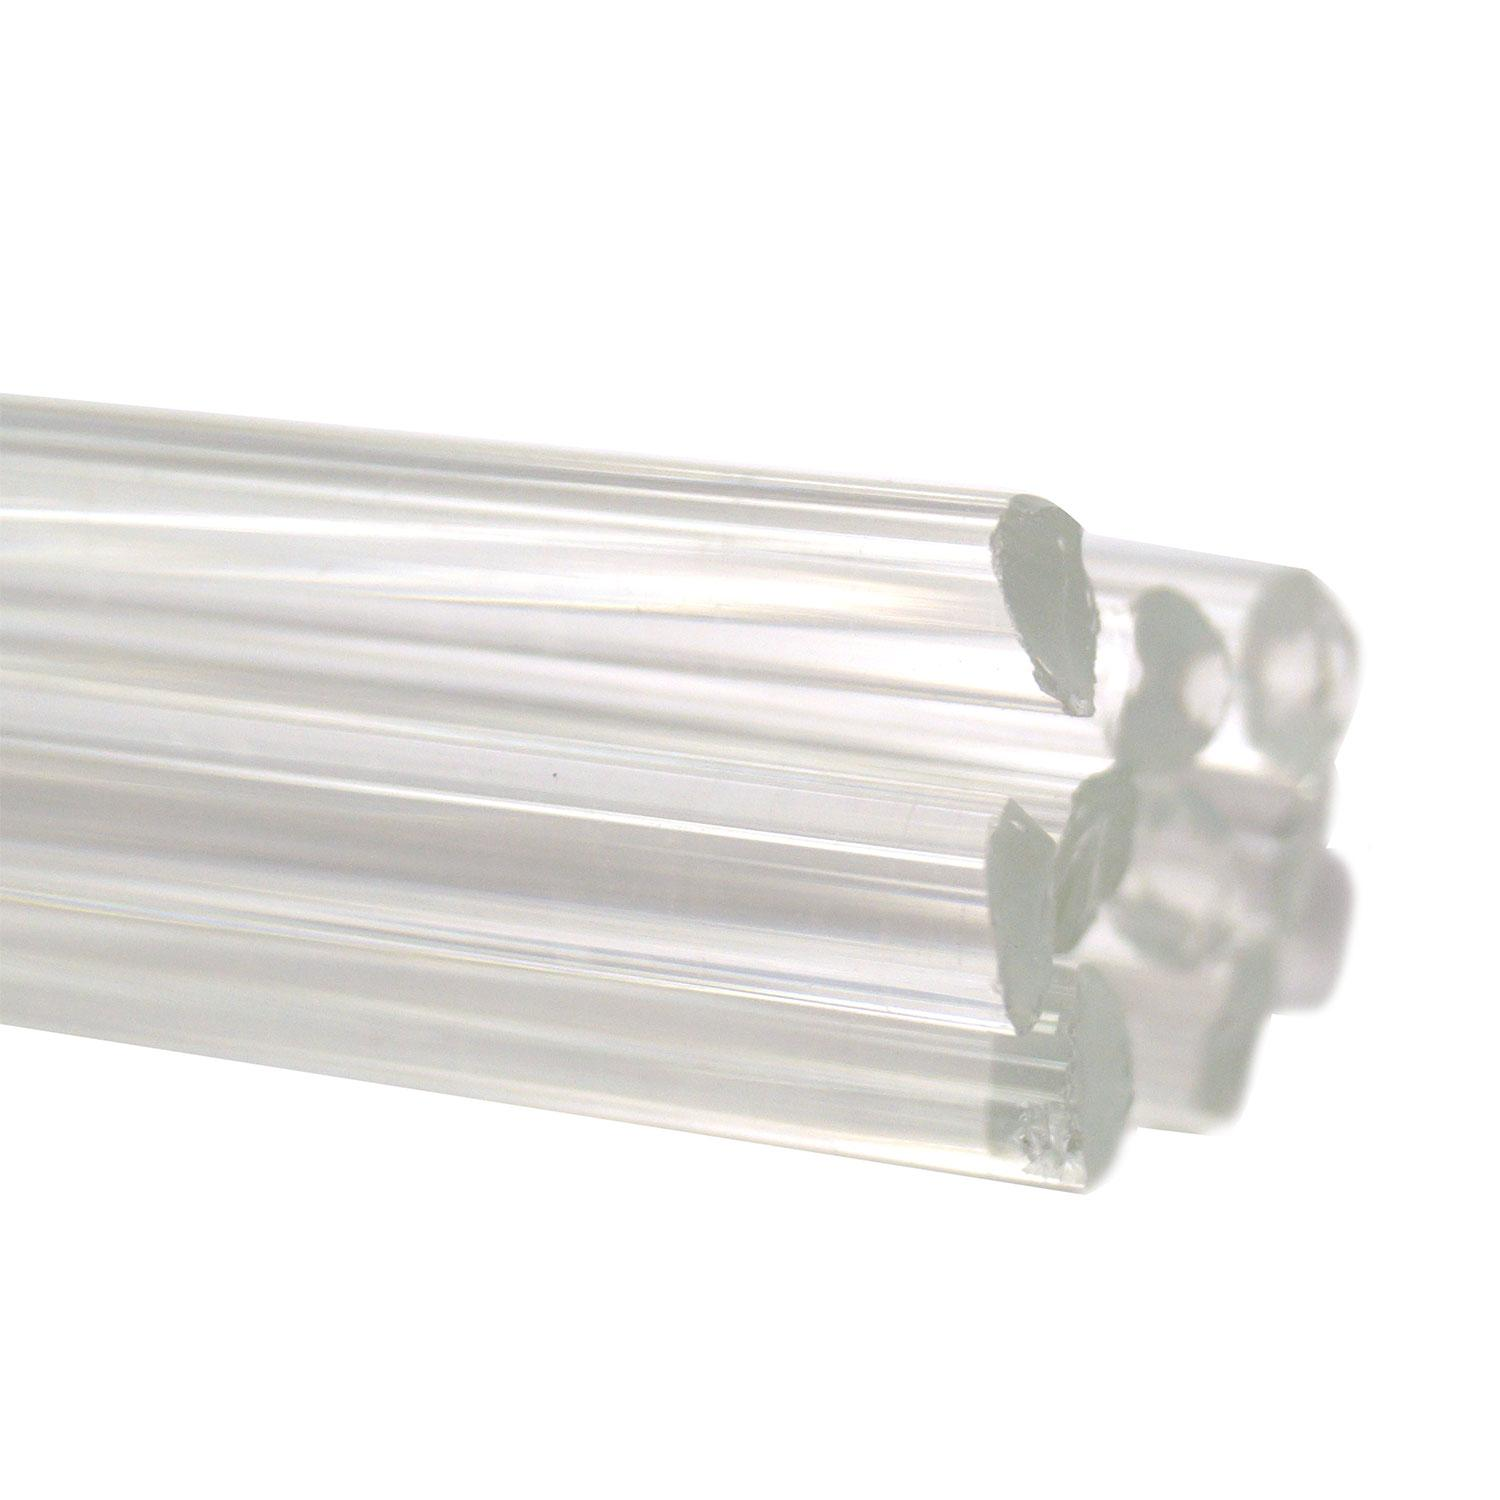 Crystal Clear Transparent Rods - 90 COE